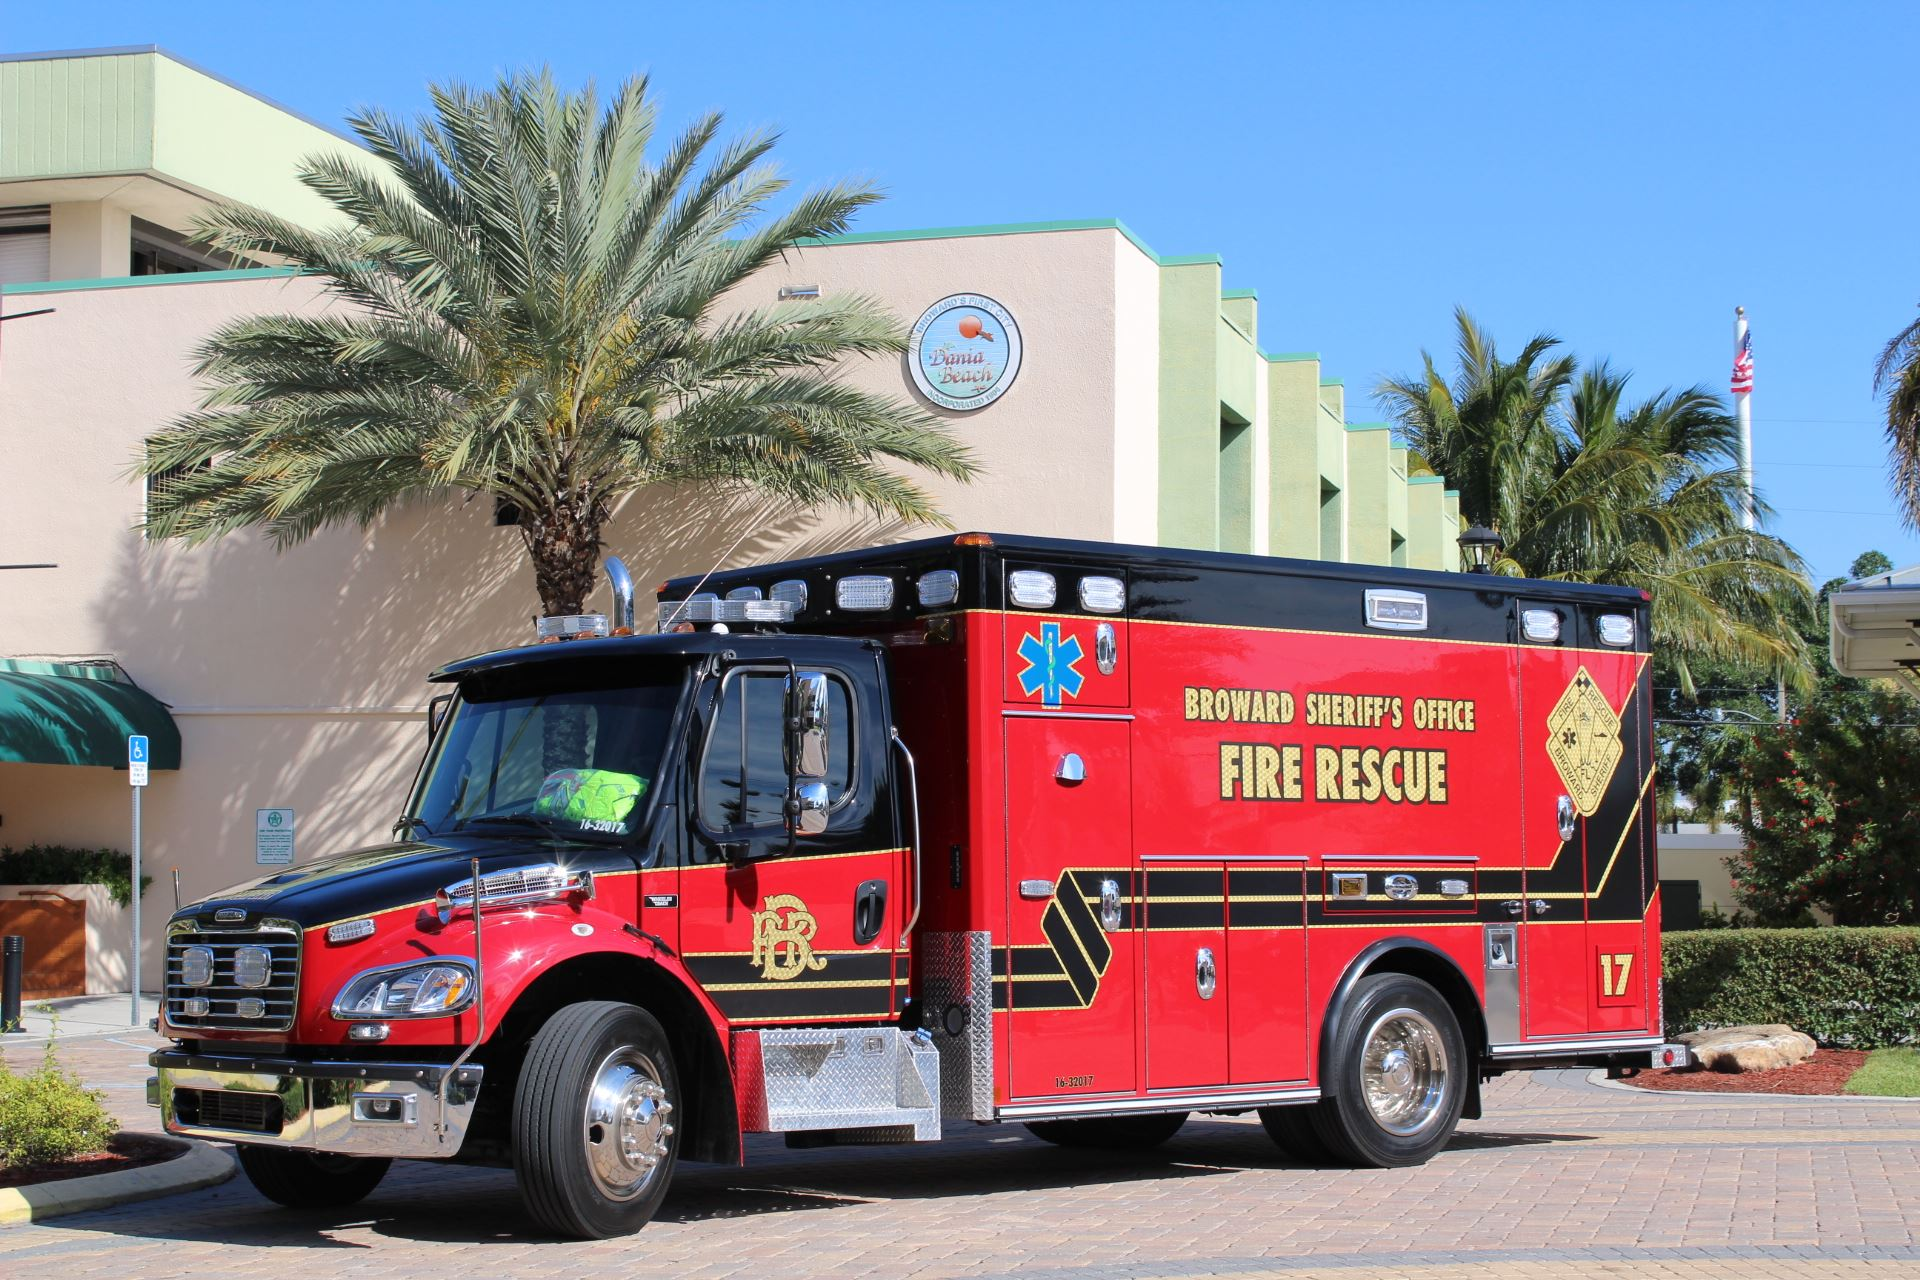 New Fire Rescue Truck Dania Beach